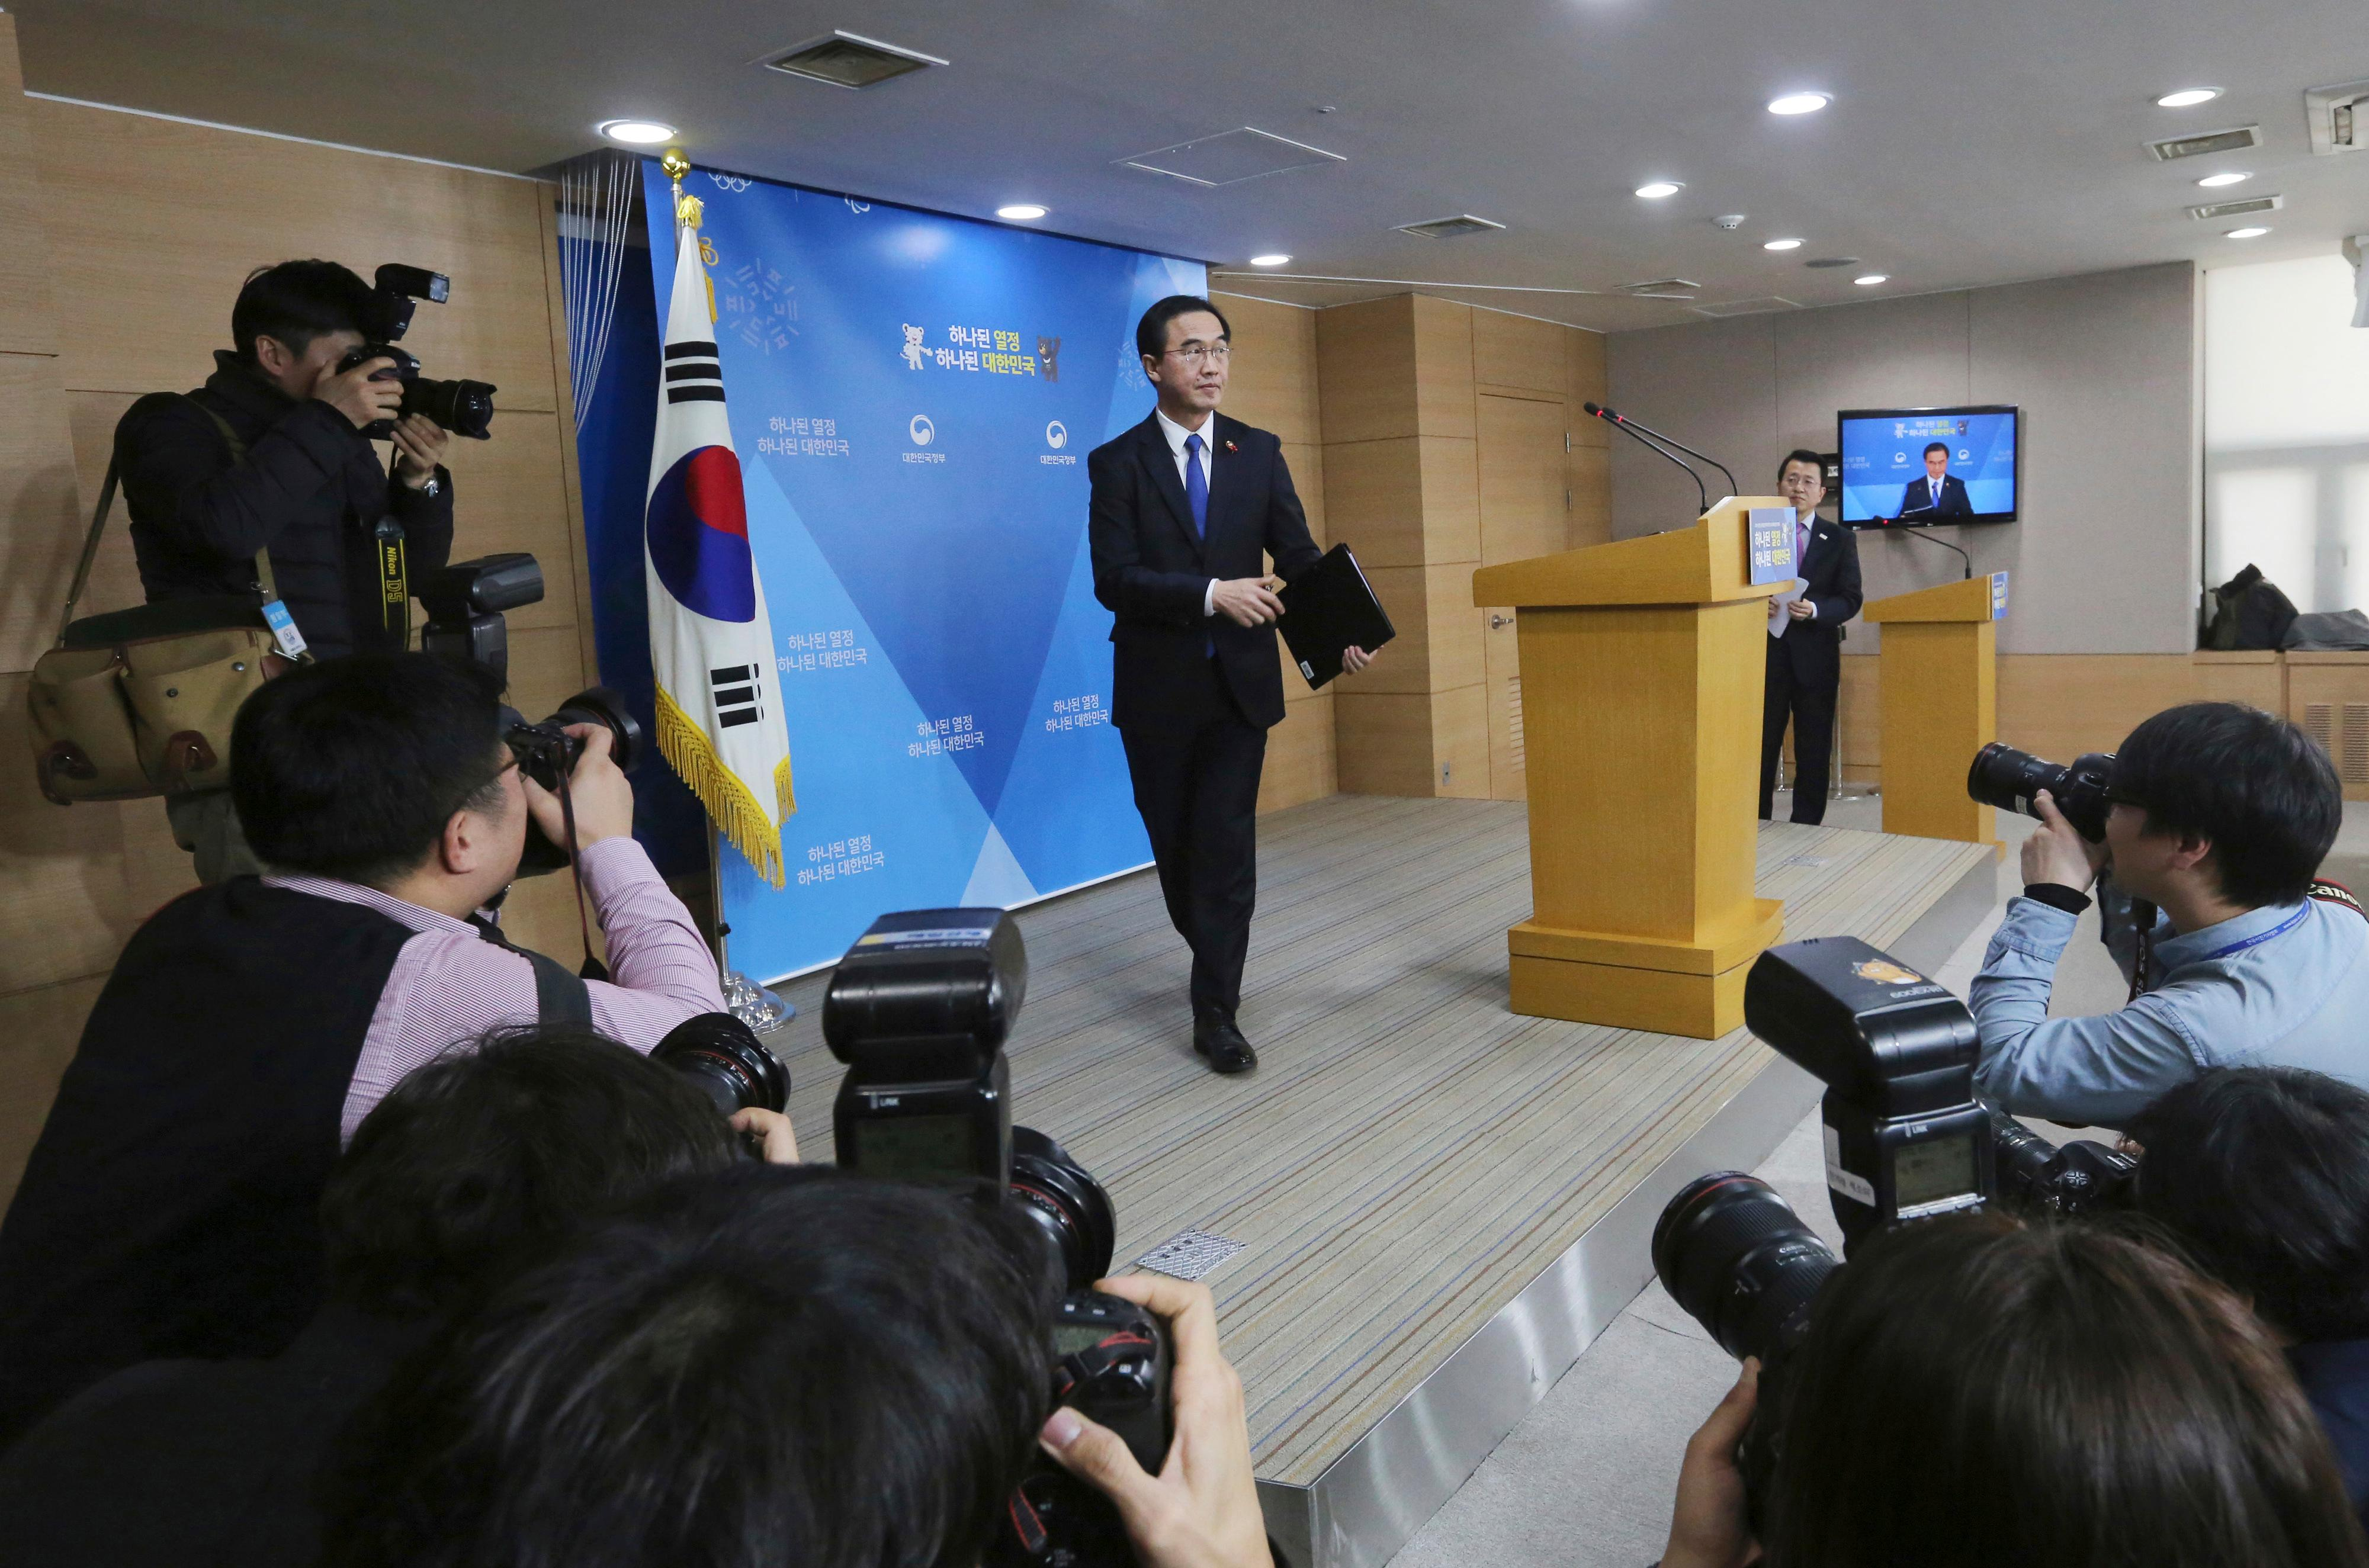 South Korean Unification Minster Cho Myoung-gyon leaves after a press conference at the government complex in Seoul, South Korea, Tuesday, Jan. 2, 2018. Cho on Tuesday offered high-level talks with rival North Korea meant to find ways to cooperate on the Winter Olympics set to begin in the South next month. (AP Photo/Ahn Young-joon)